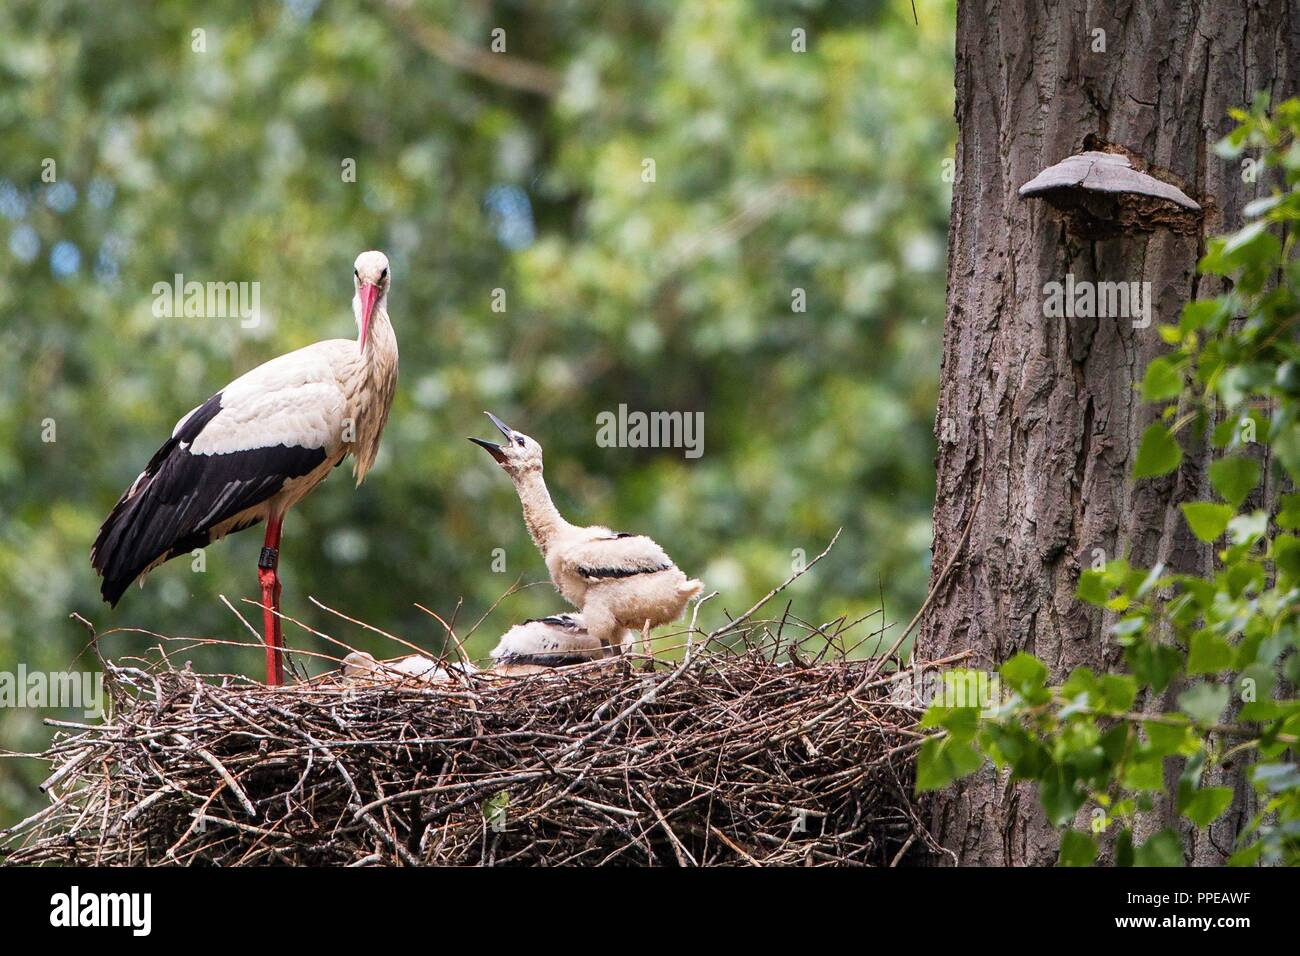 White Stork (Ciconia ciconia) juvenile on nest begging for food, Baden-Wuerttemberg, Germany | usage worldwide Stock Photo